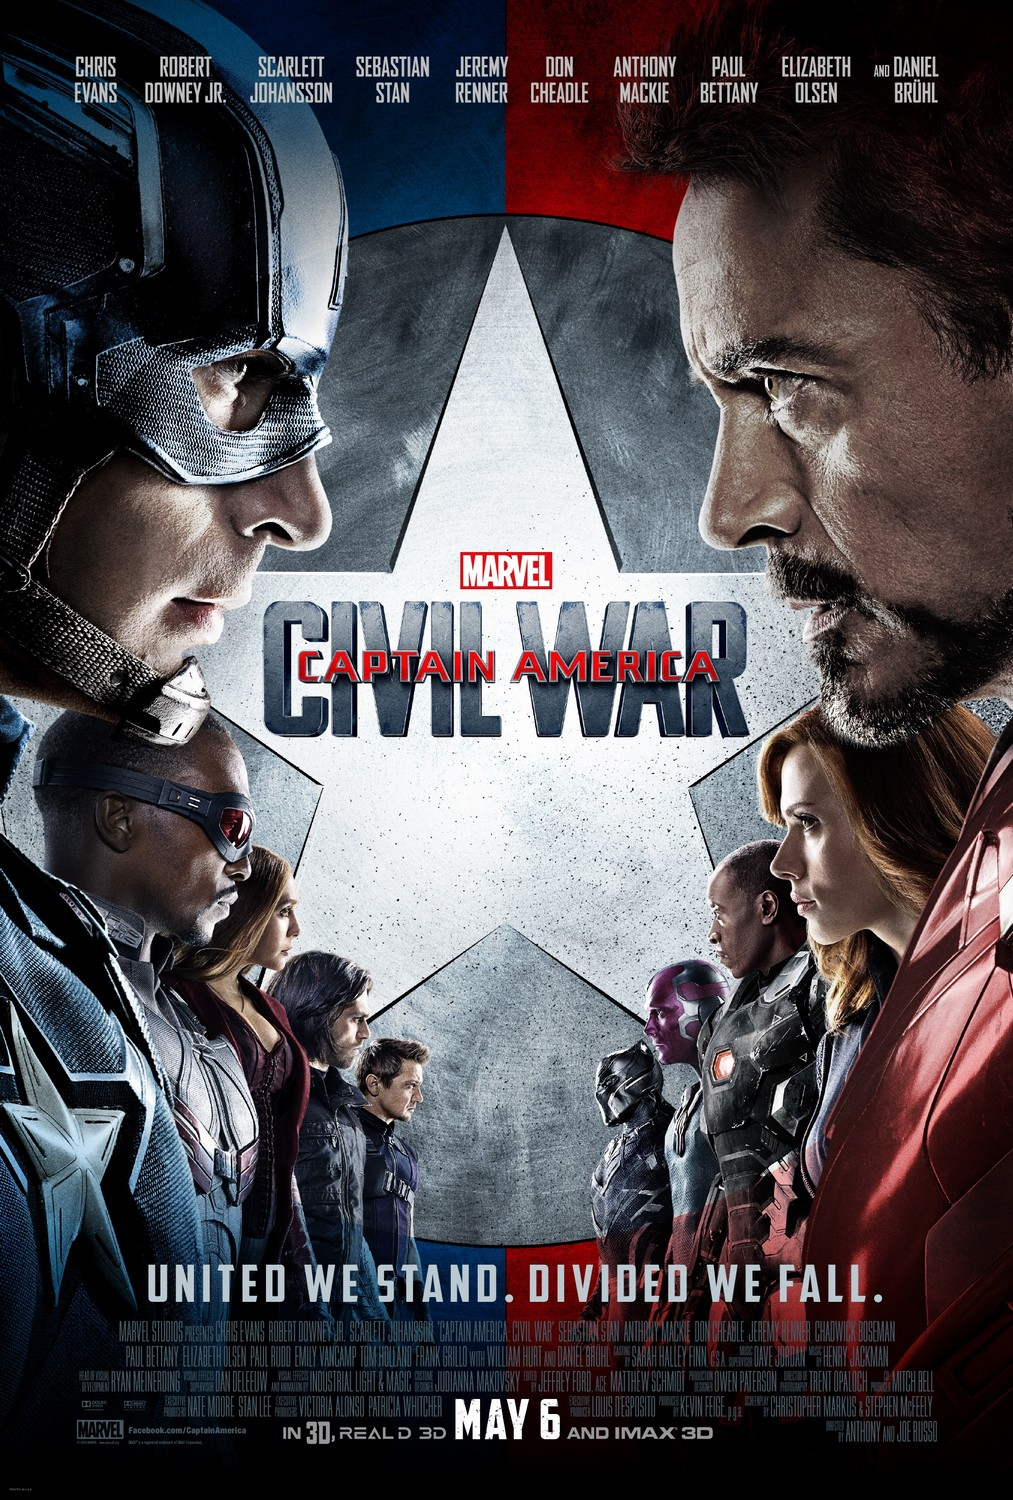 Captain America: Civil War 美国队长3:内战